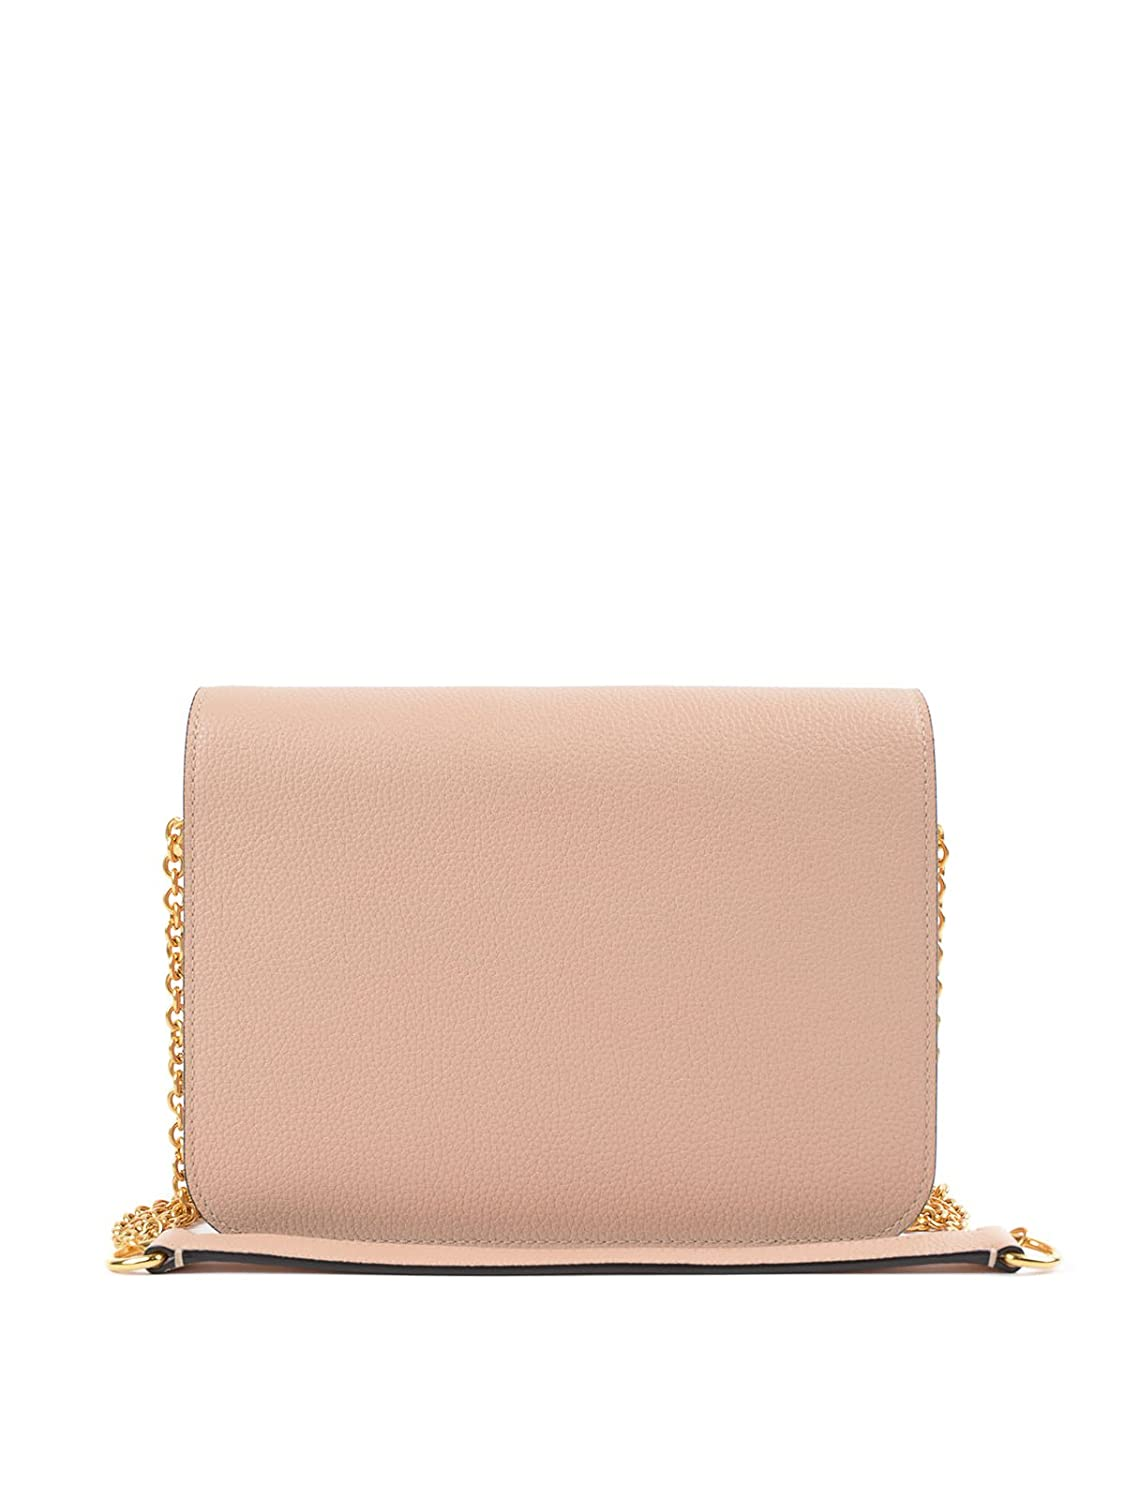 Mulberry Women s Hh4420205j633 Pink Leather Shoulder Bag  Amazon.co.uk   Clothing 6e8417b6bf3e9